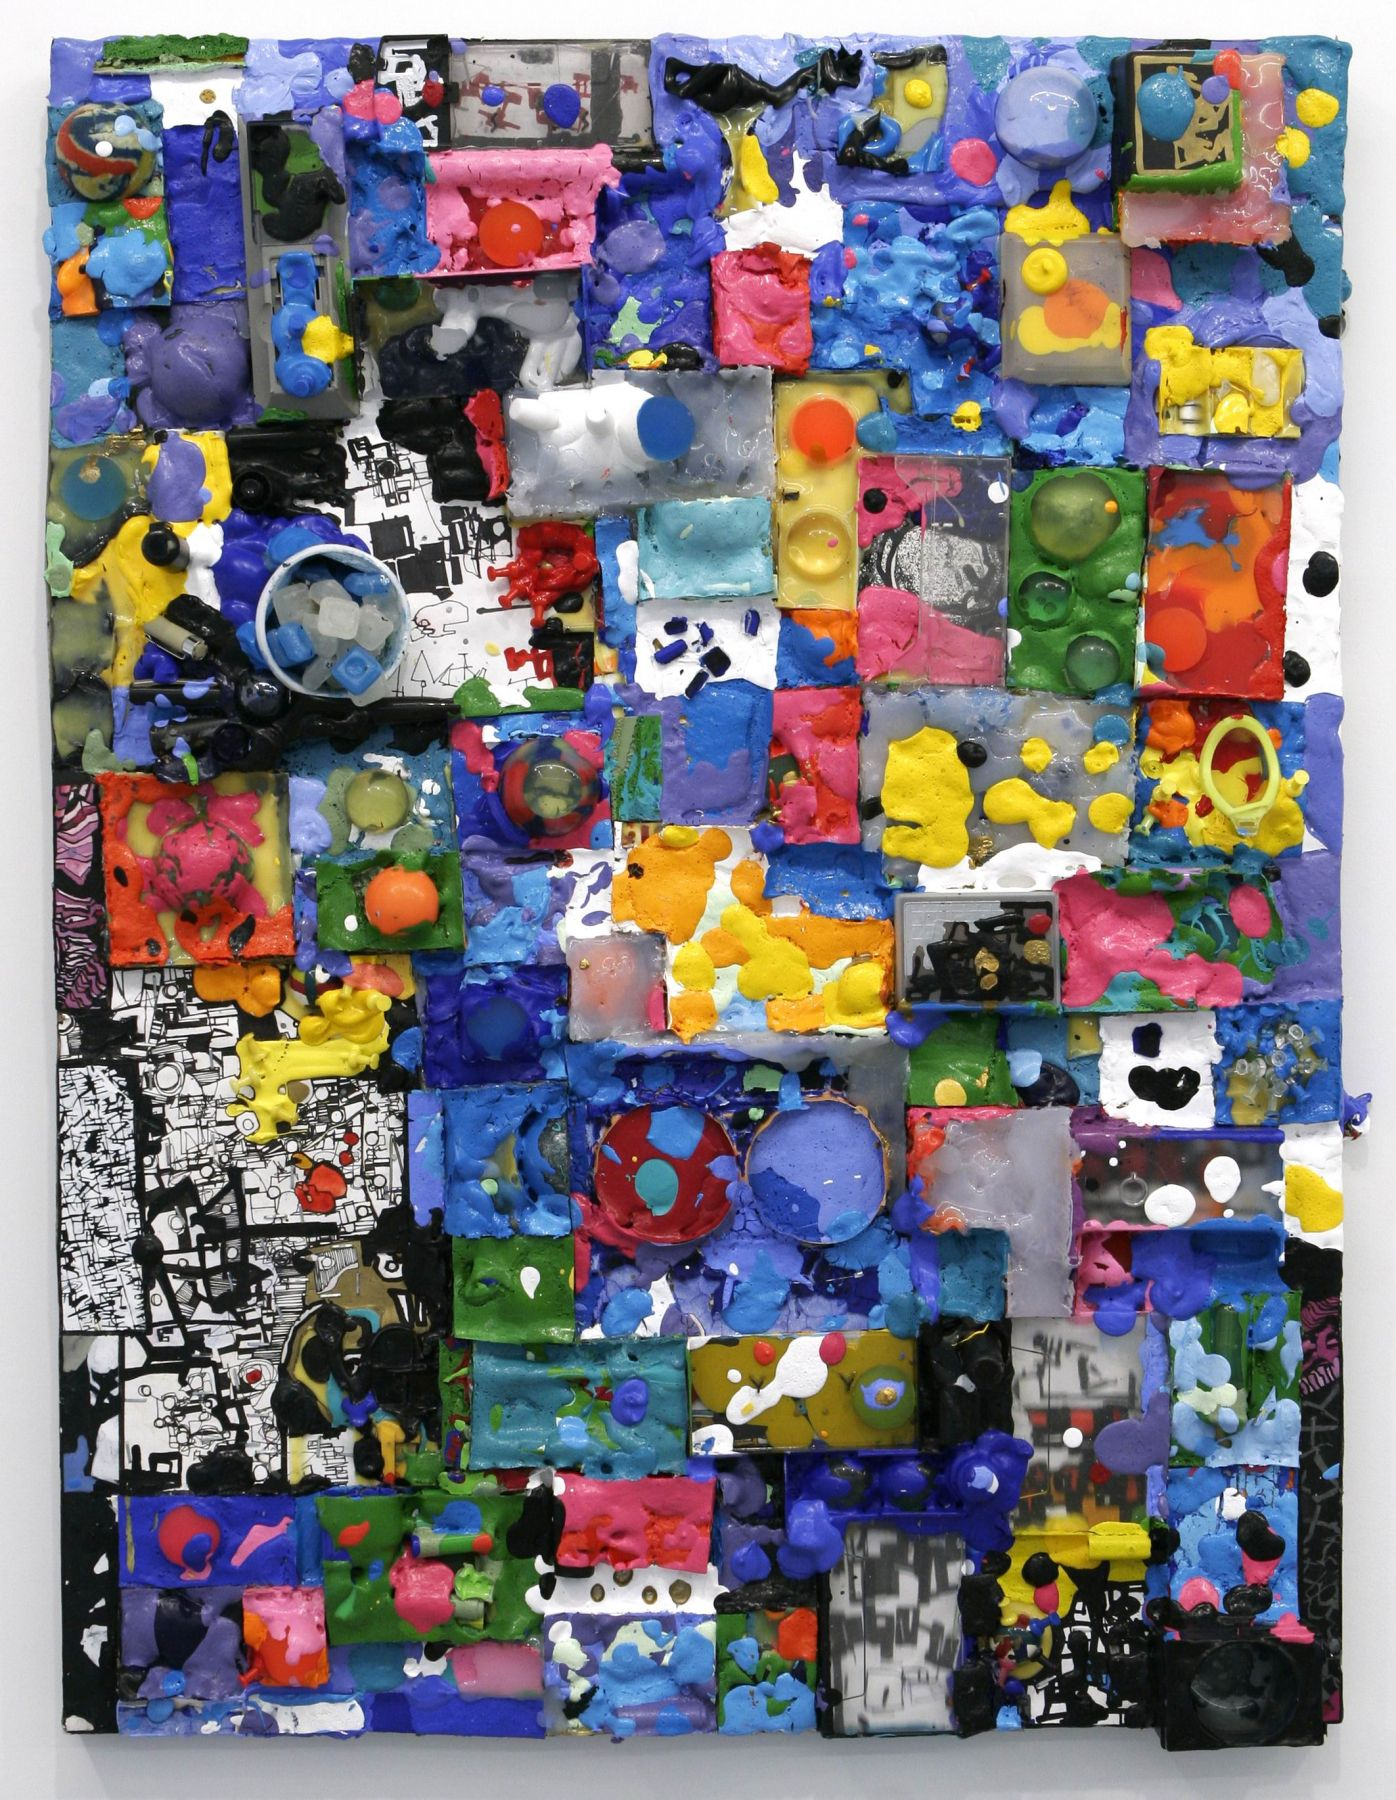 Zak Smith, The Painting That Is Fun To Look At, 2005